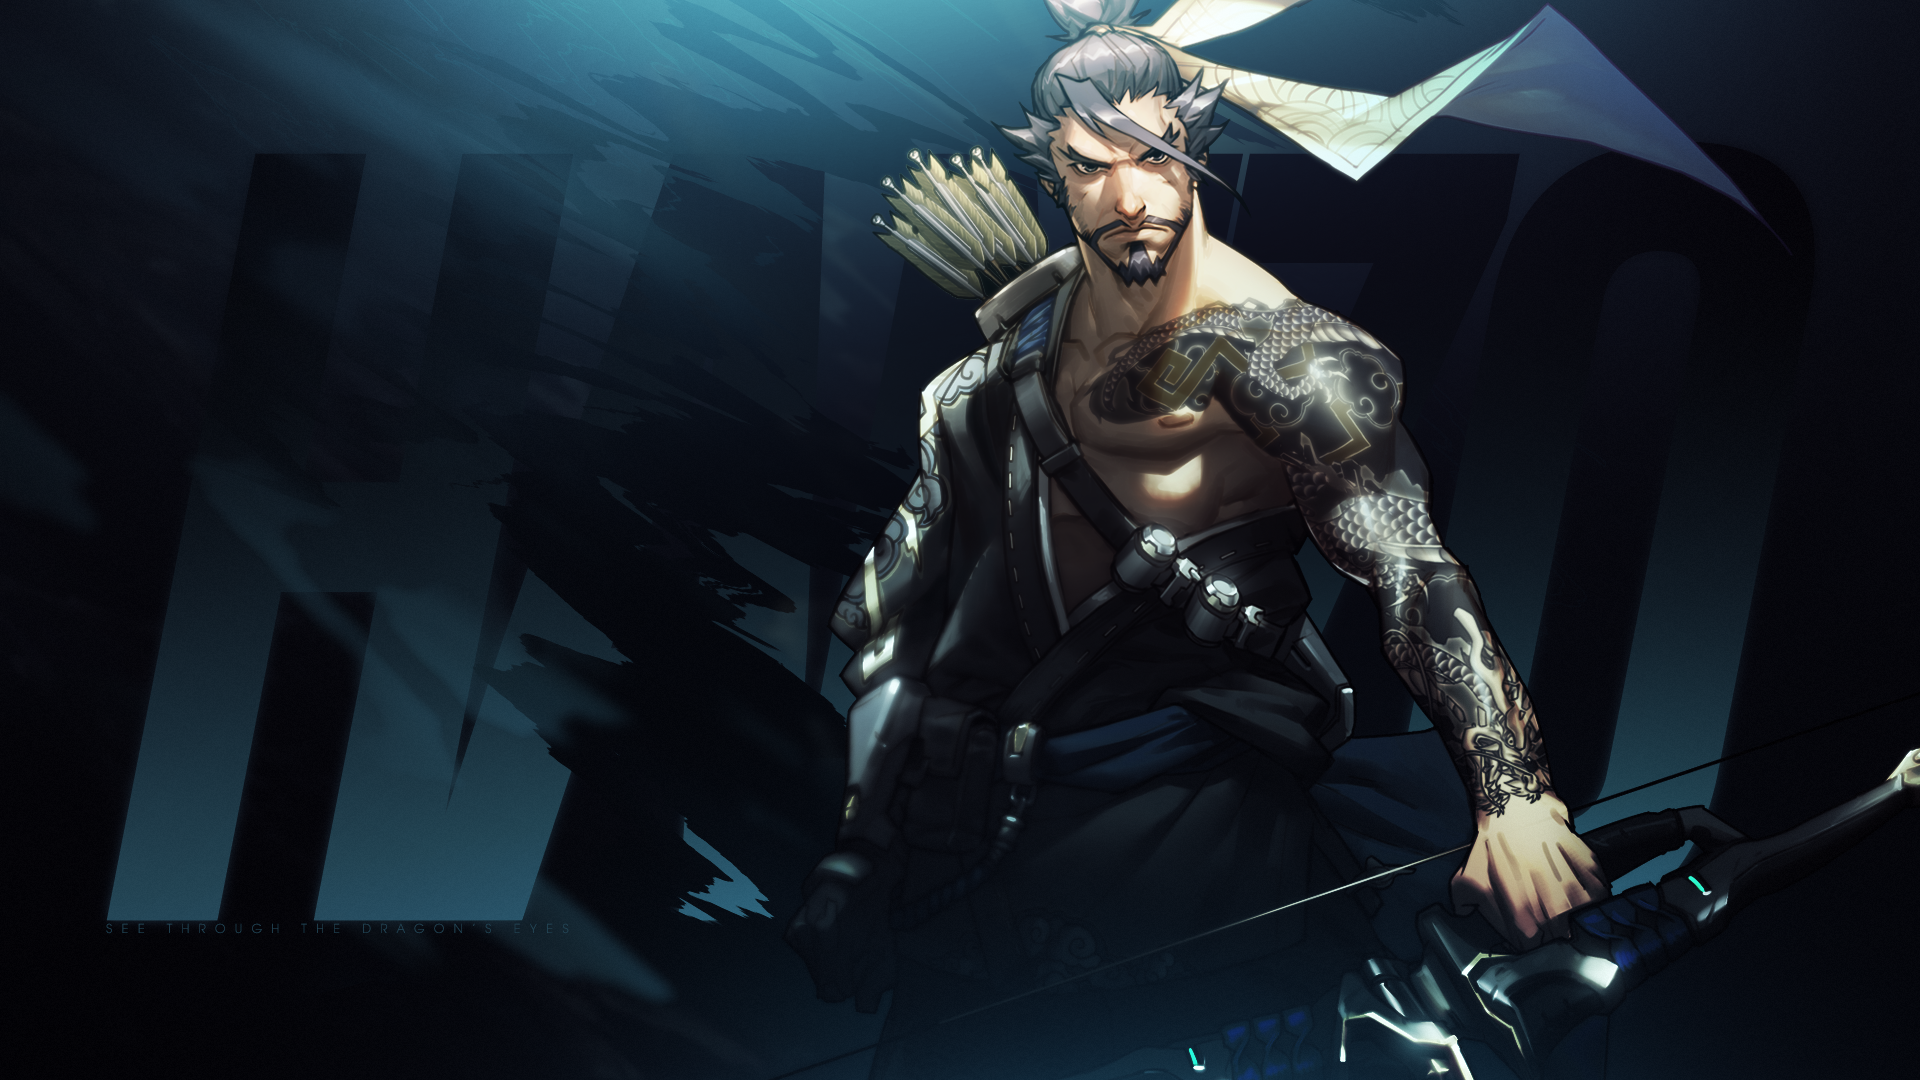 Overwatch Hanzo Wallpaper By Mikoyanx Png 1920 1080 Overwatch Wallpapers Overwatch Hanzo Overwatch